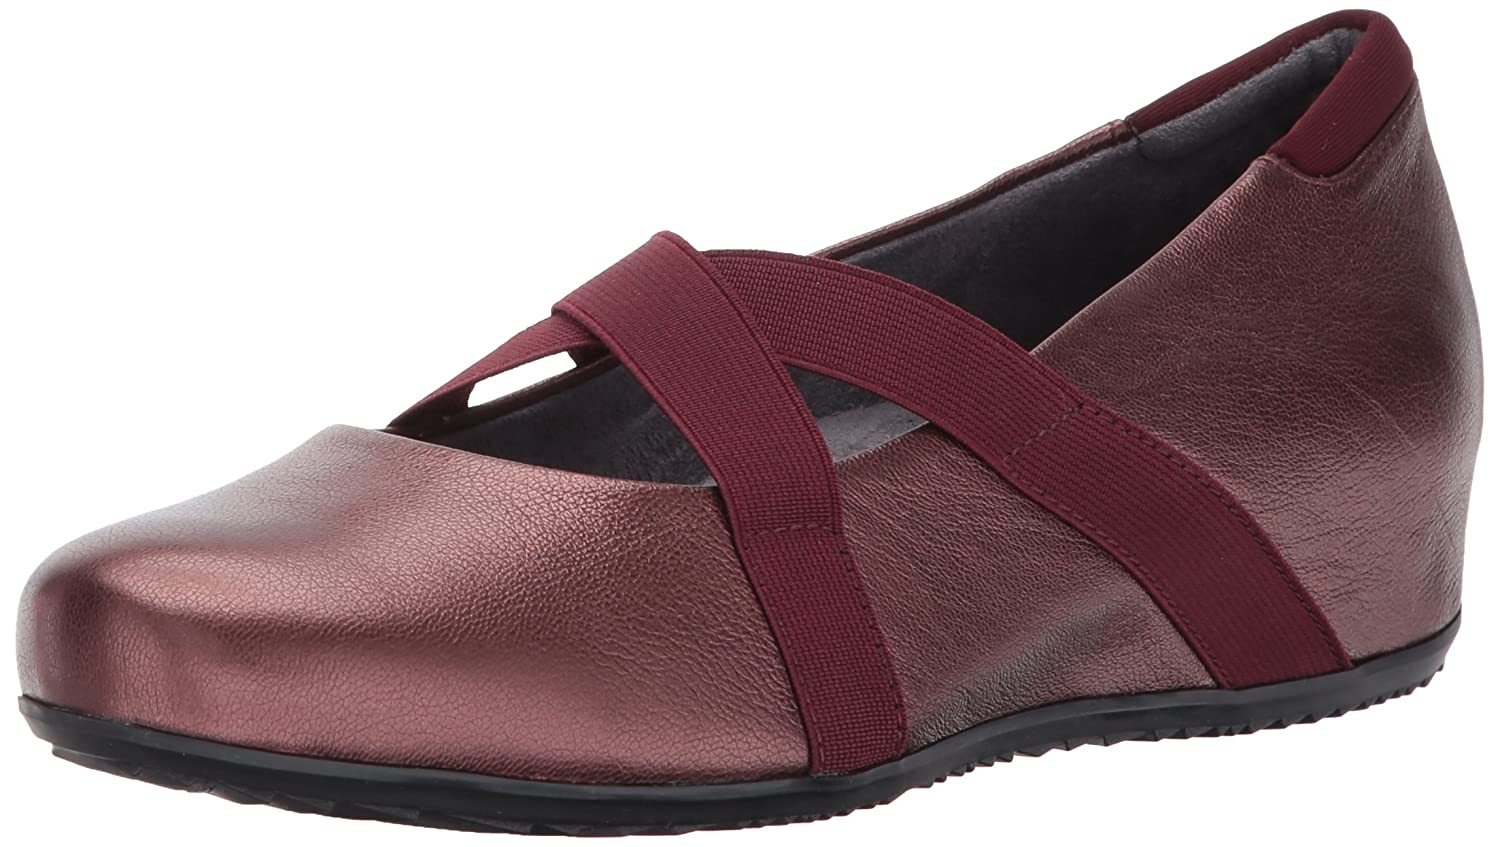 SoftWalk Women's Waverly Mary Jane Flat B01N2WC3AI 9.5 B(M) US|Burgundy